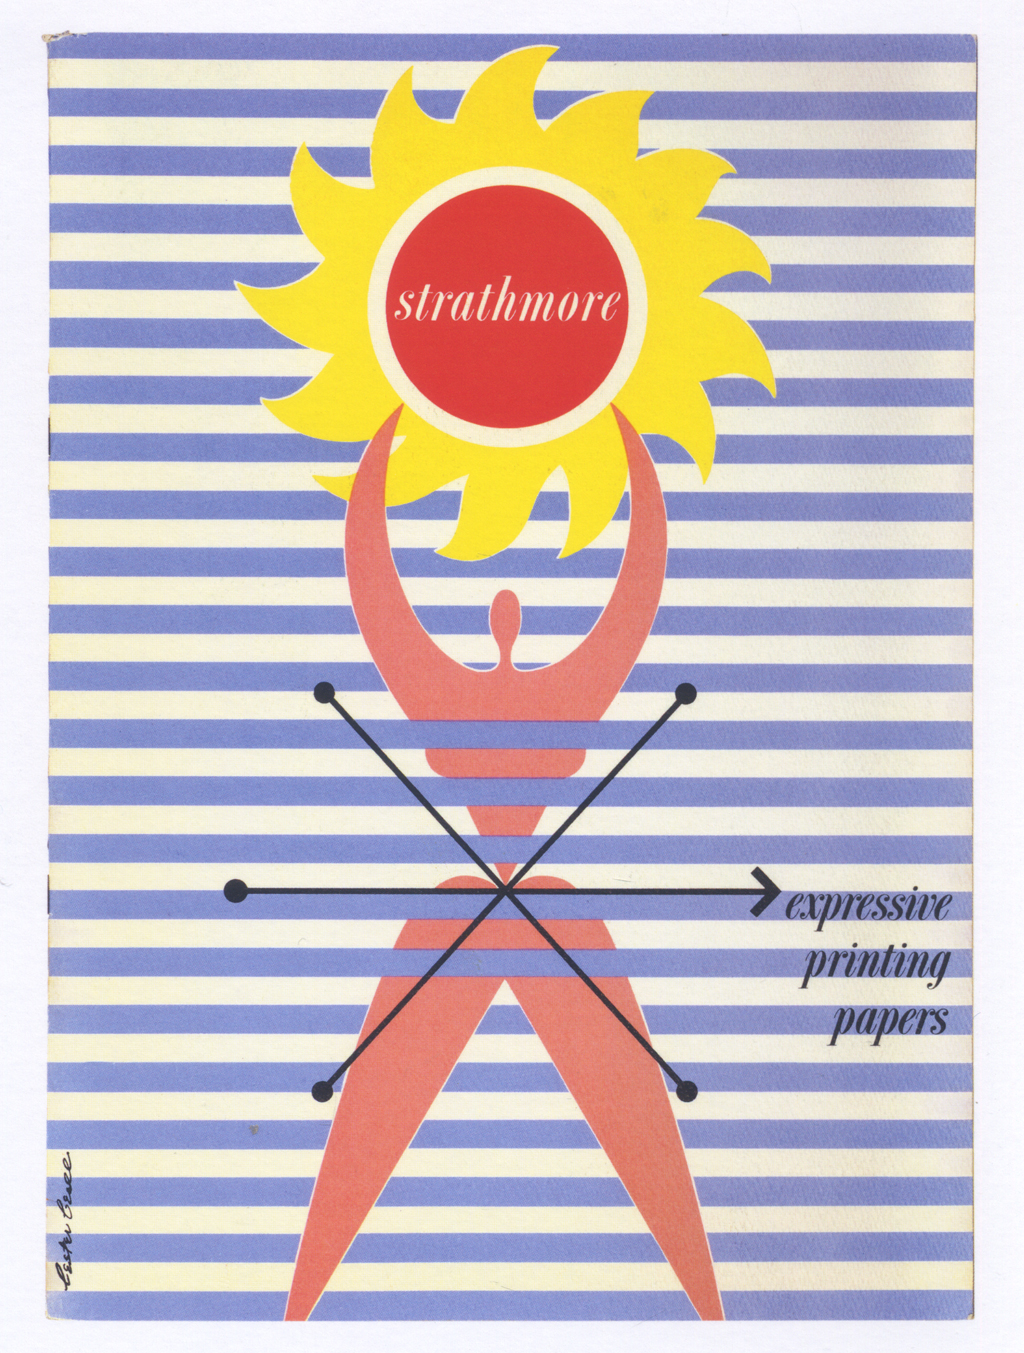 Strathmore expressive printing papers (Strathmore Paper Co., 1950). Design by Lester Beall. Photograph by Vincent Trinacria.